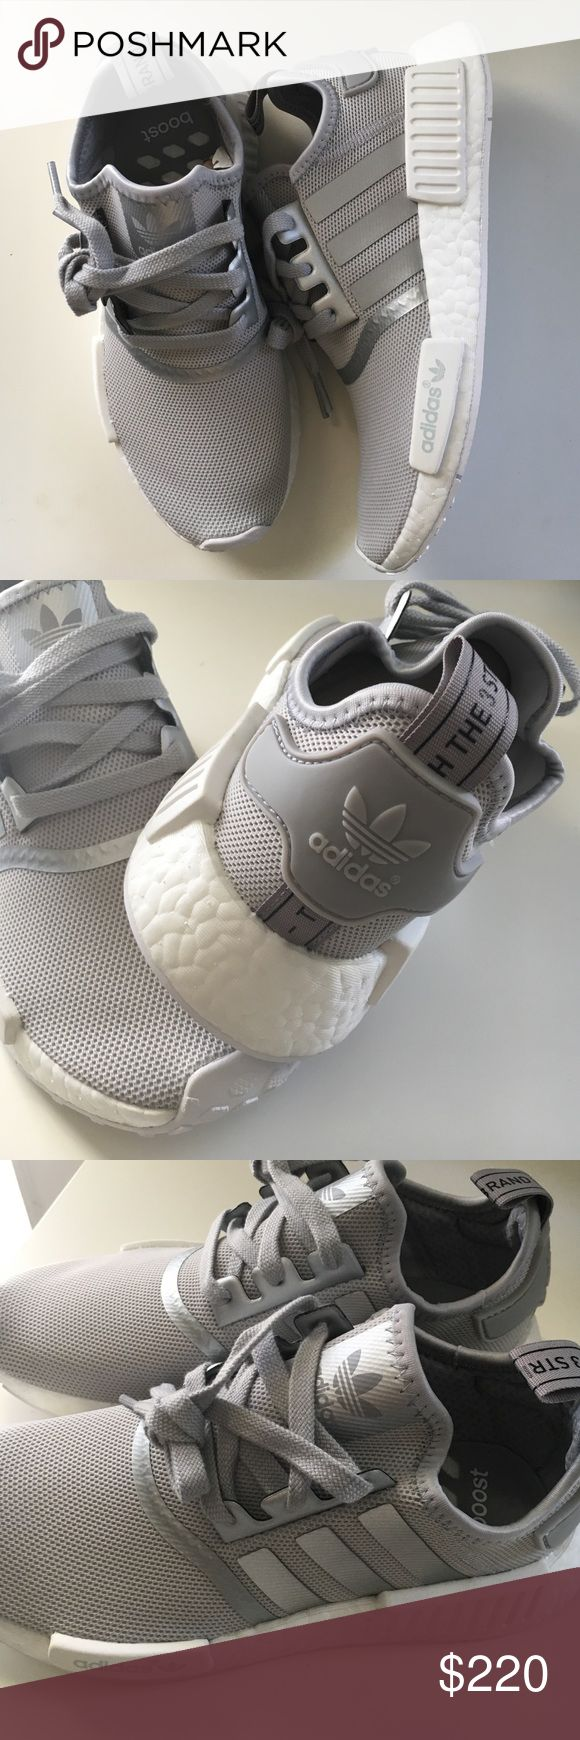 Other Faucet Accessories nmd adidas website legit